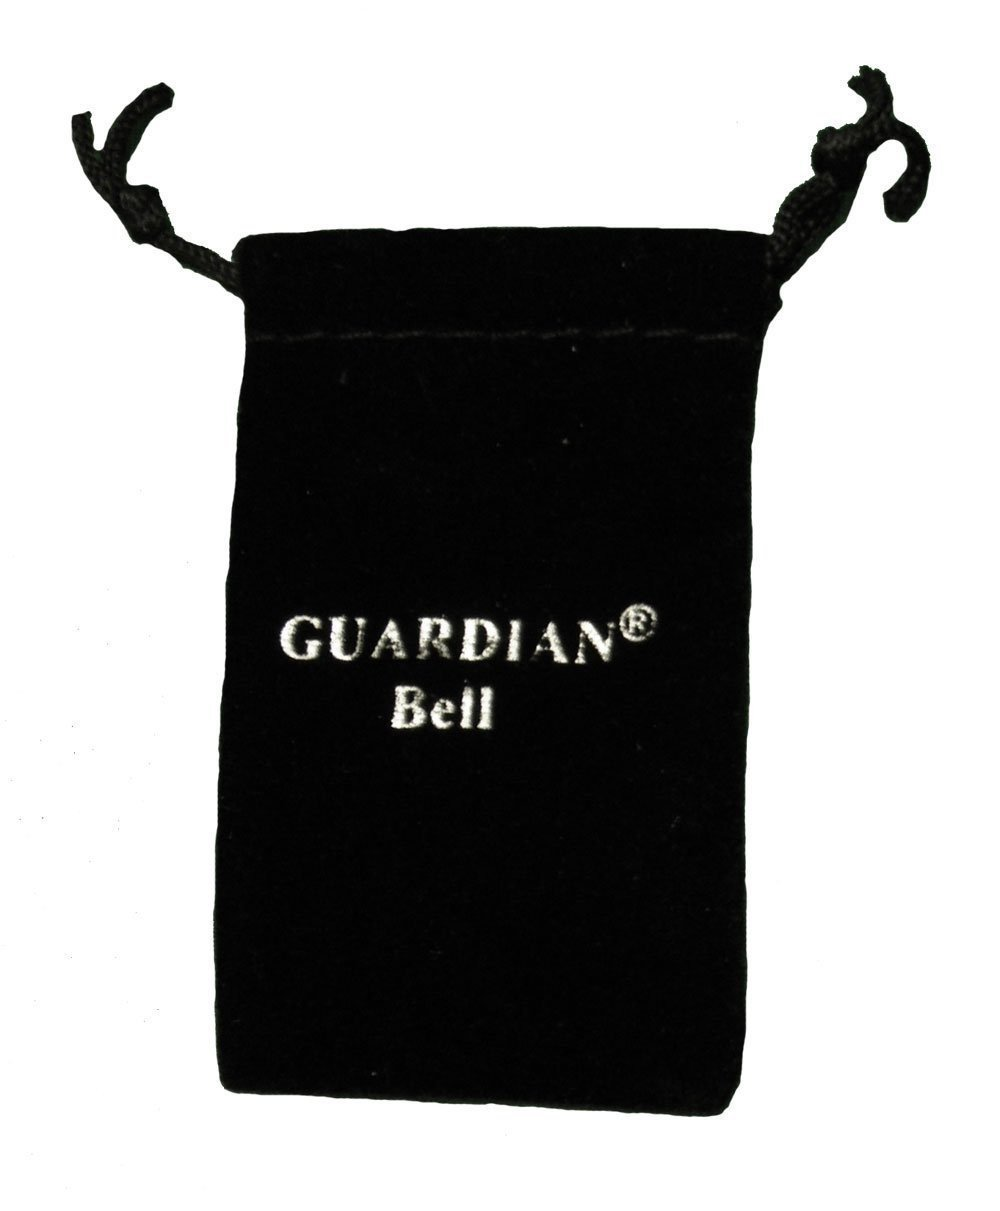 8 BALL GUARDIAN BELL WITH HANGER